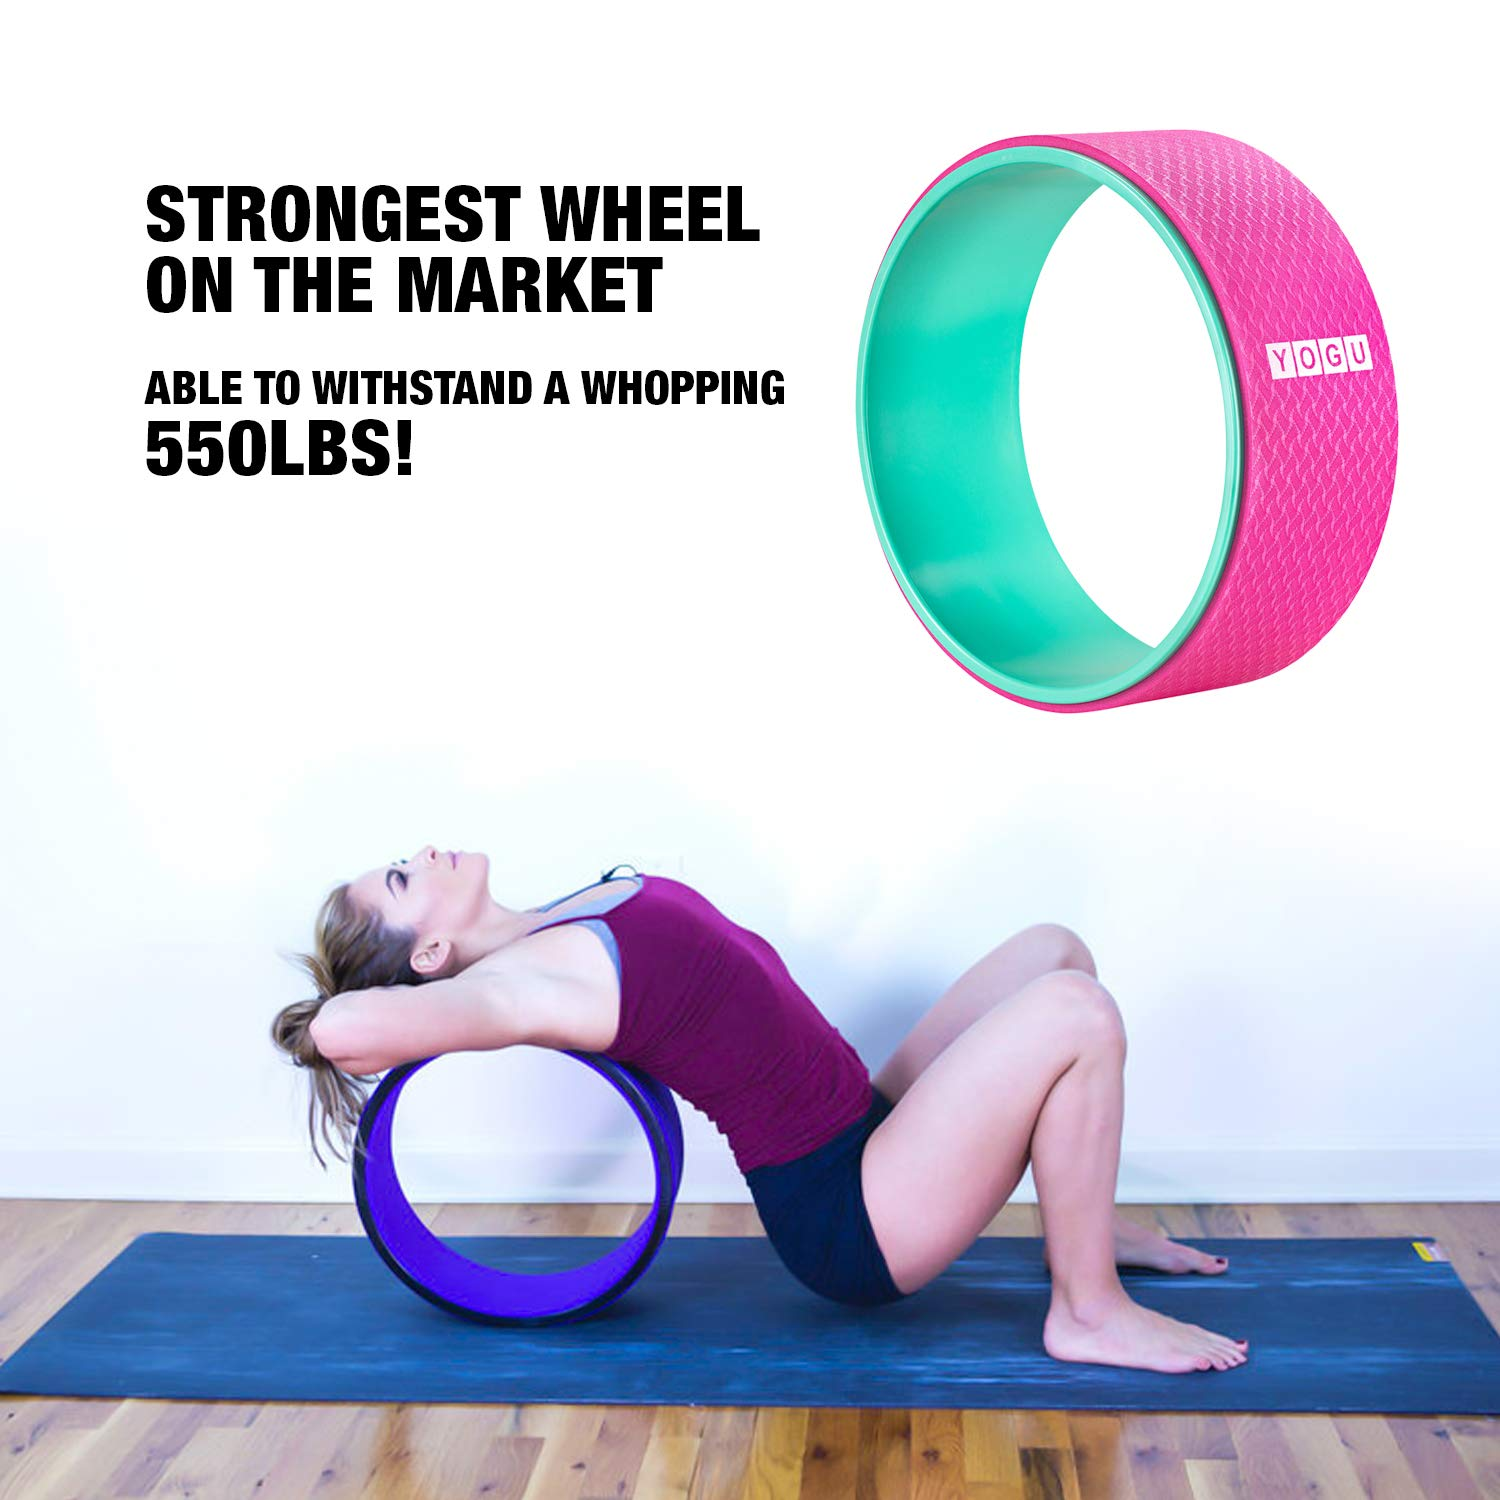 YOGU Yoga Wheel for Stretching, Improve Yoga, Stretching, Reduce Back Pain (Pink)